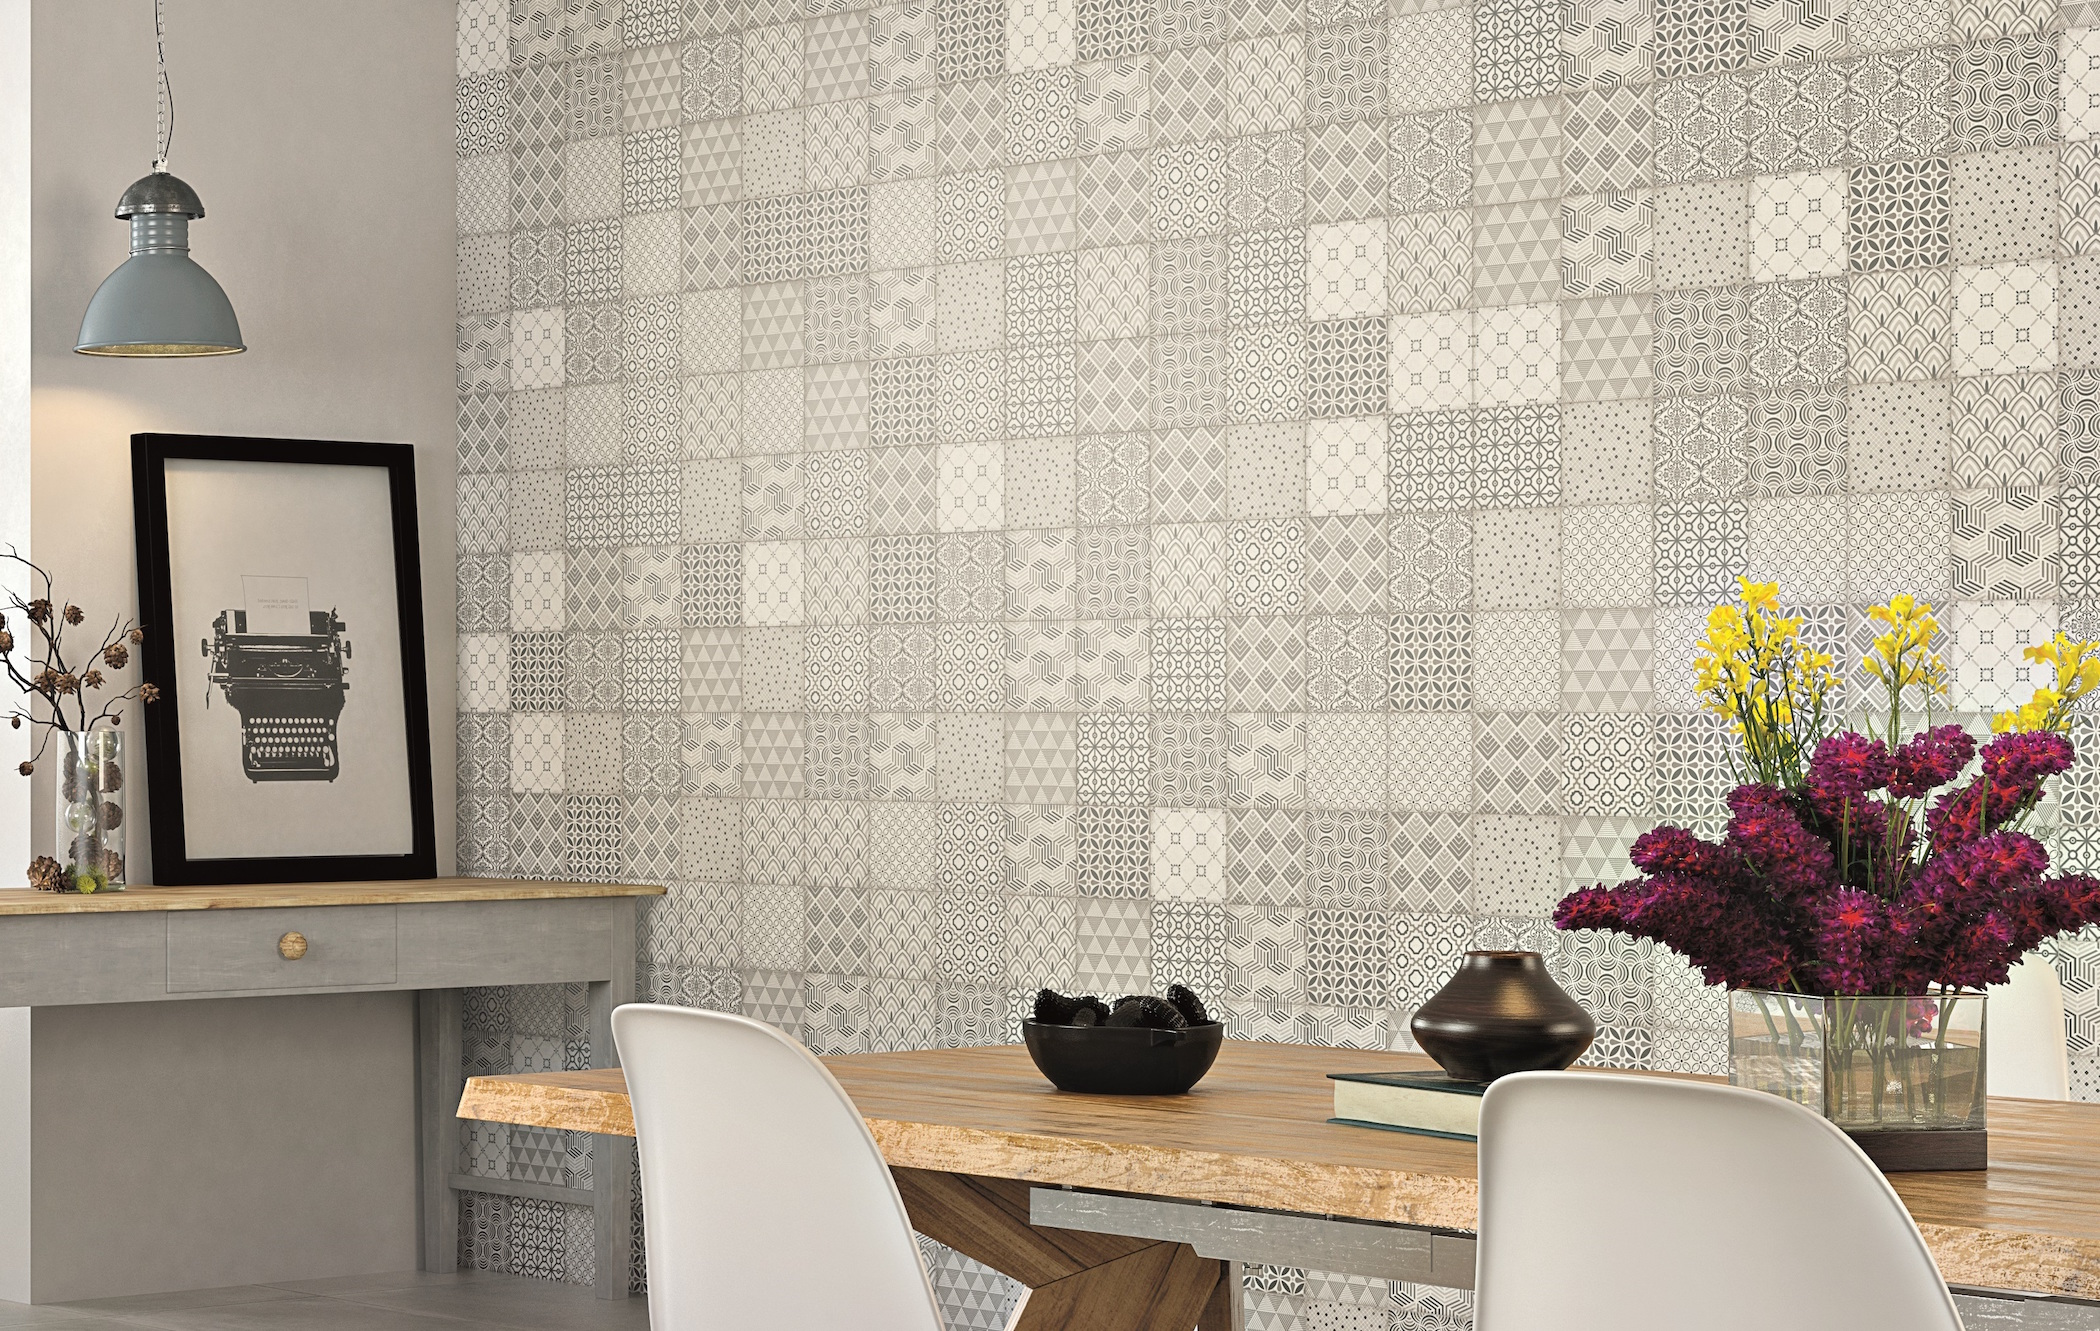 Ceracasa Tile Of Spain Reveals Global Design Trends And Innovation